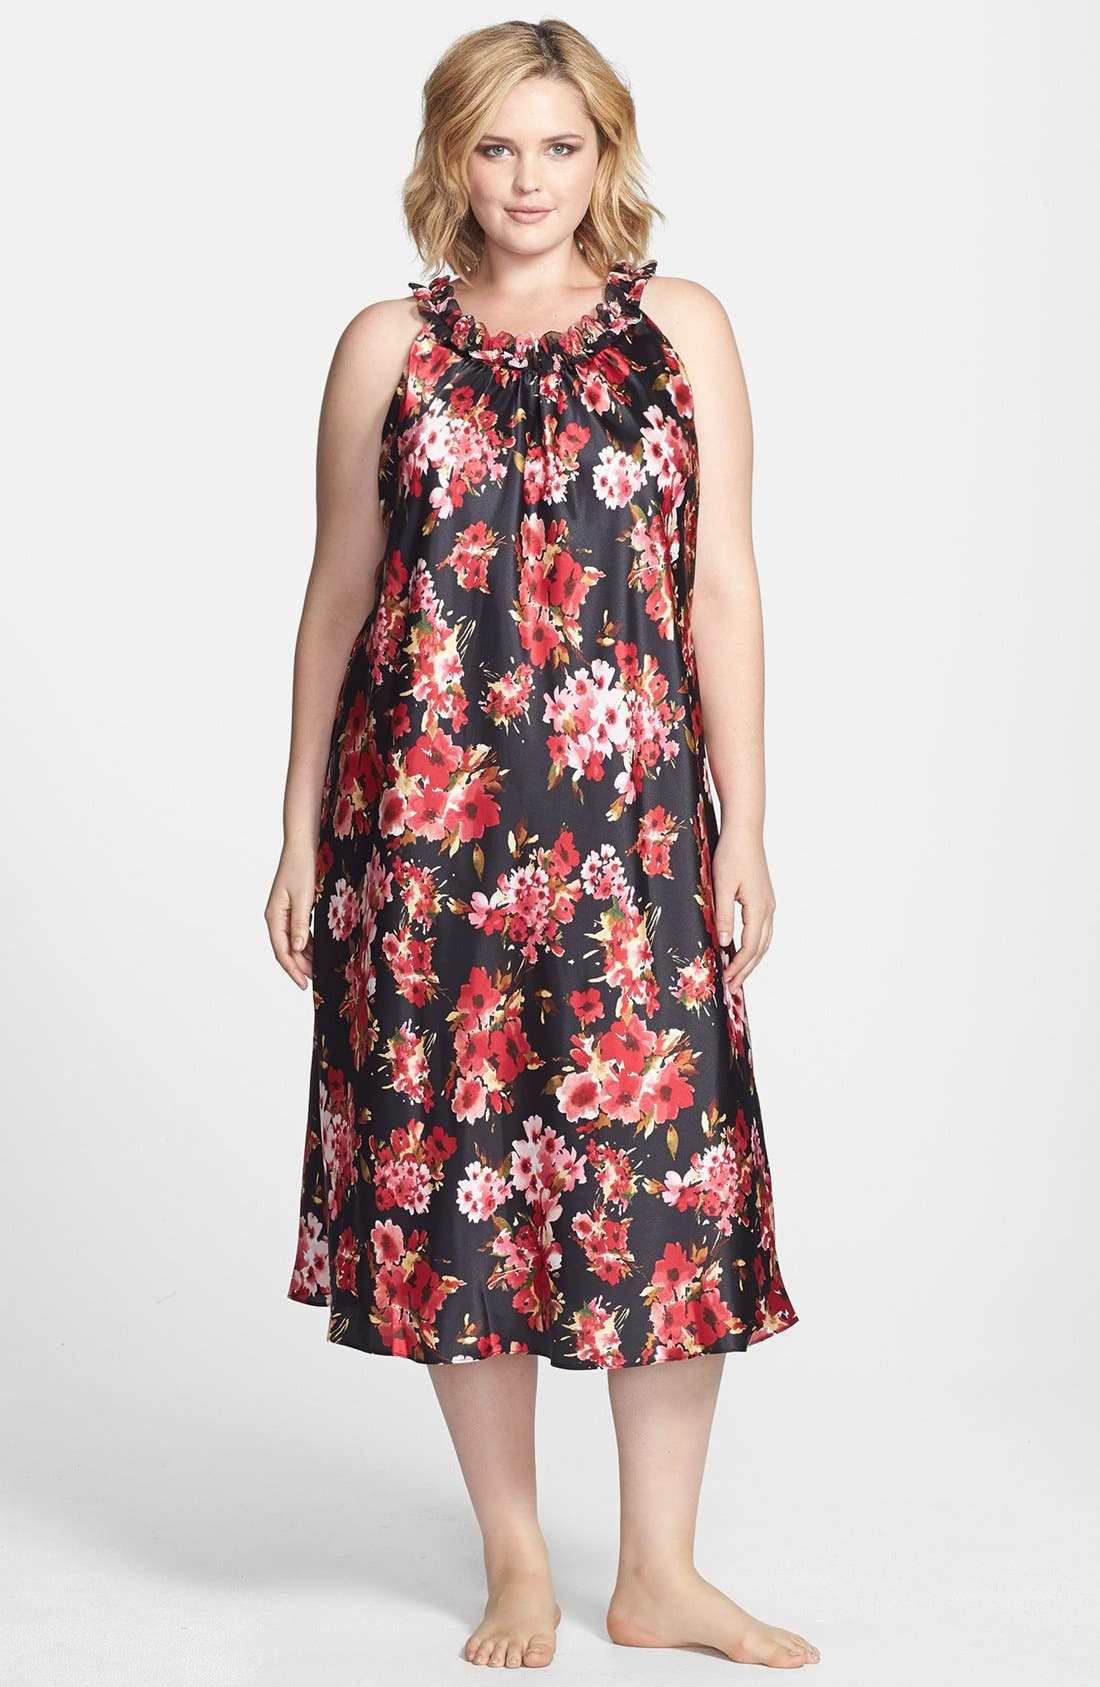 Alternate Image 1 Selected - Oscar de la Renta Sleepwear 'Holiday Bouquet' Long Nightgown (Plus Size)